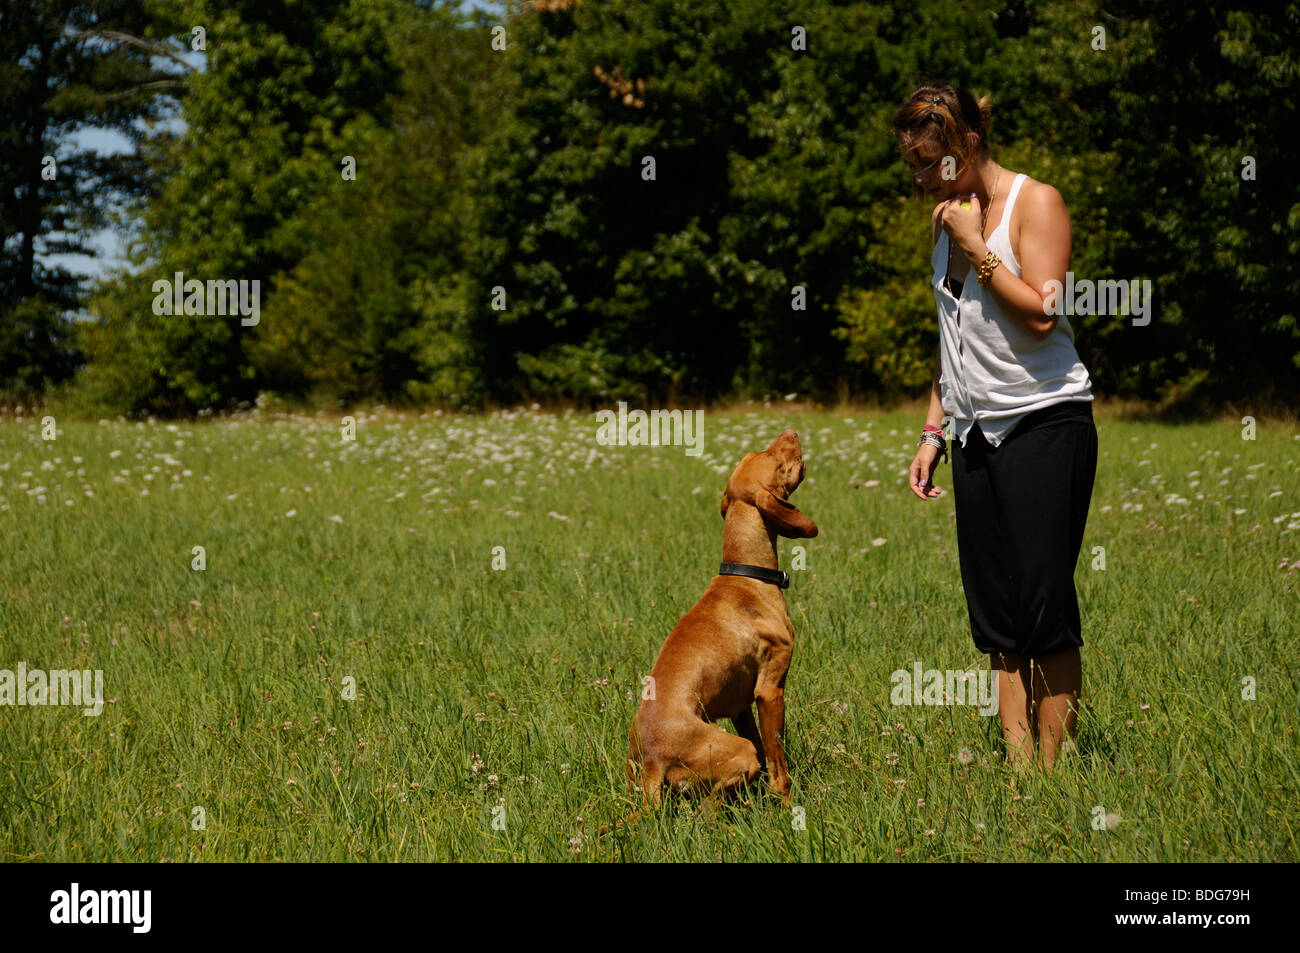 Stock photo of a teenage girl training her dog. - Stock Image